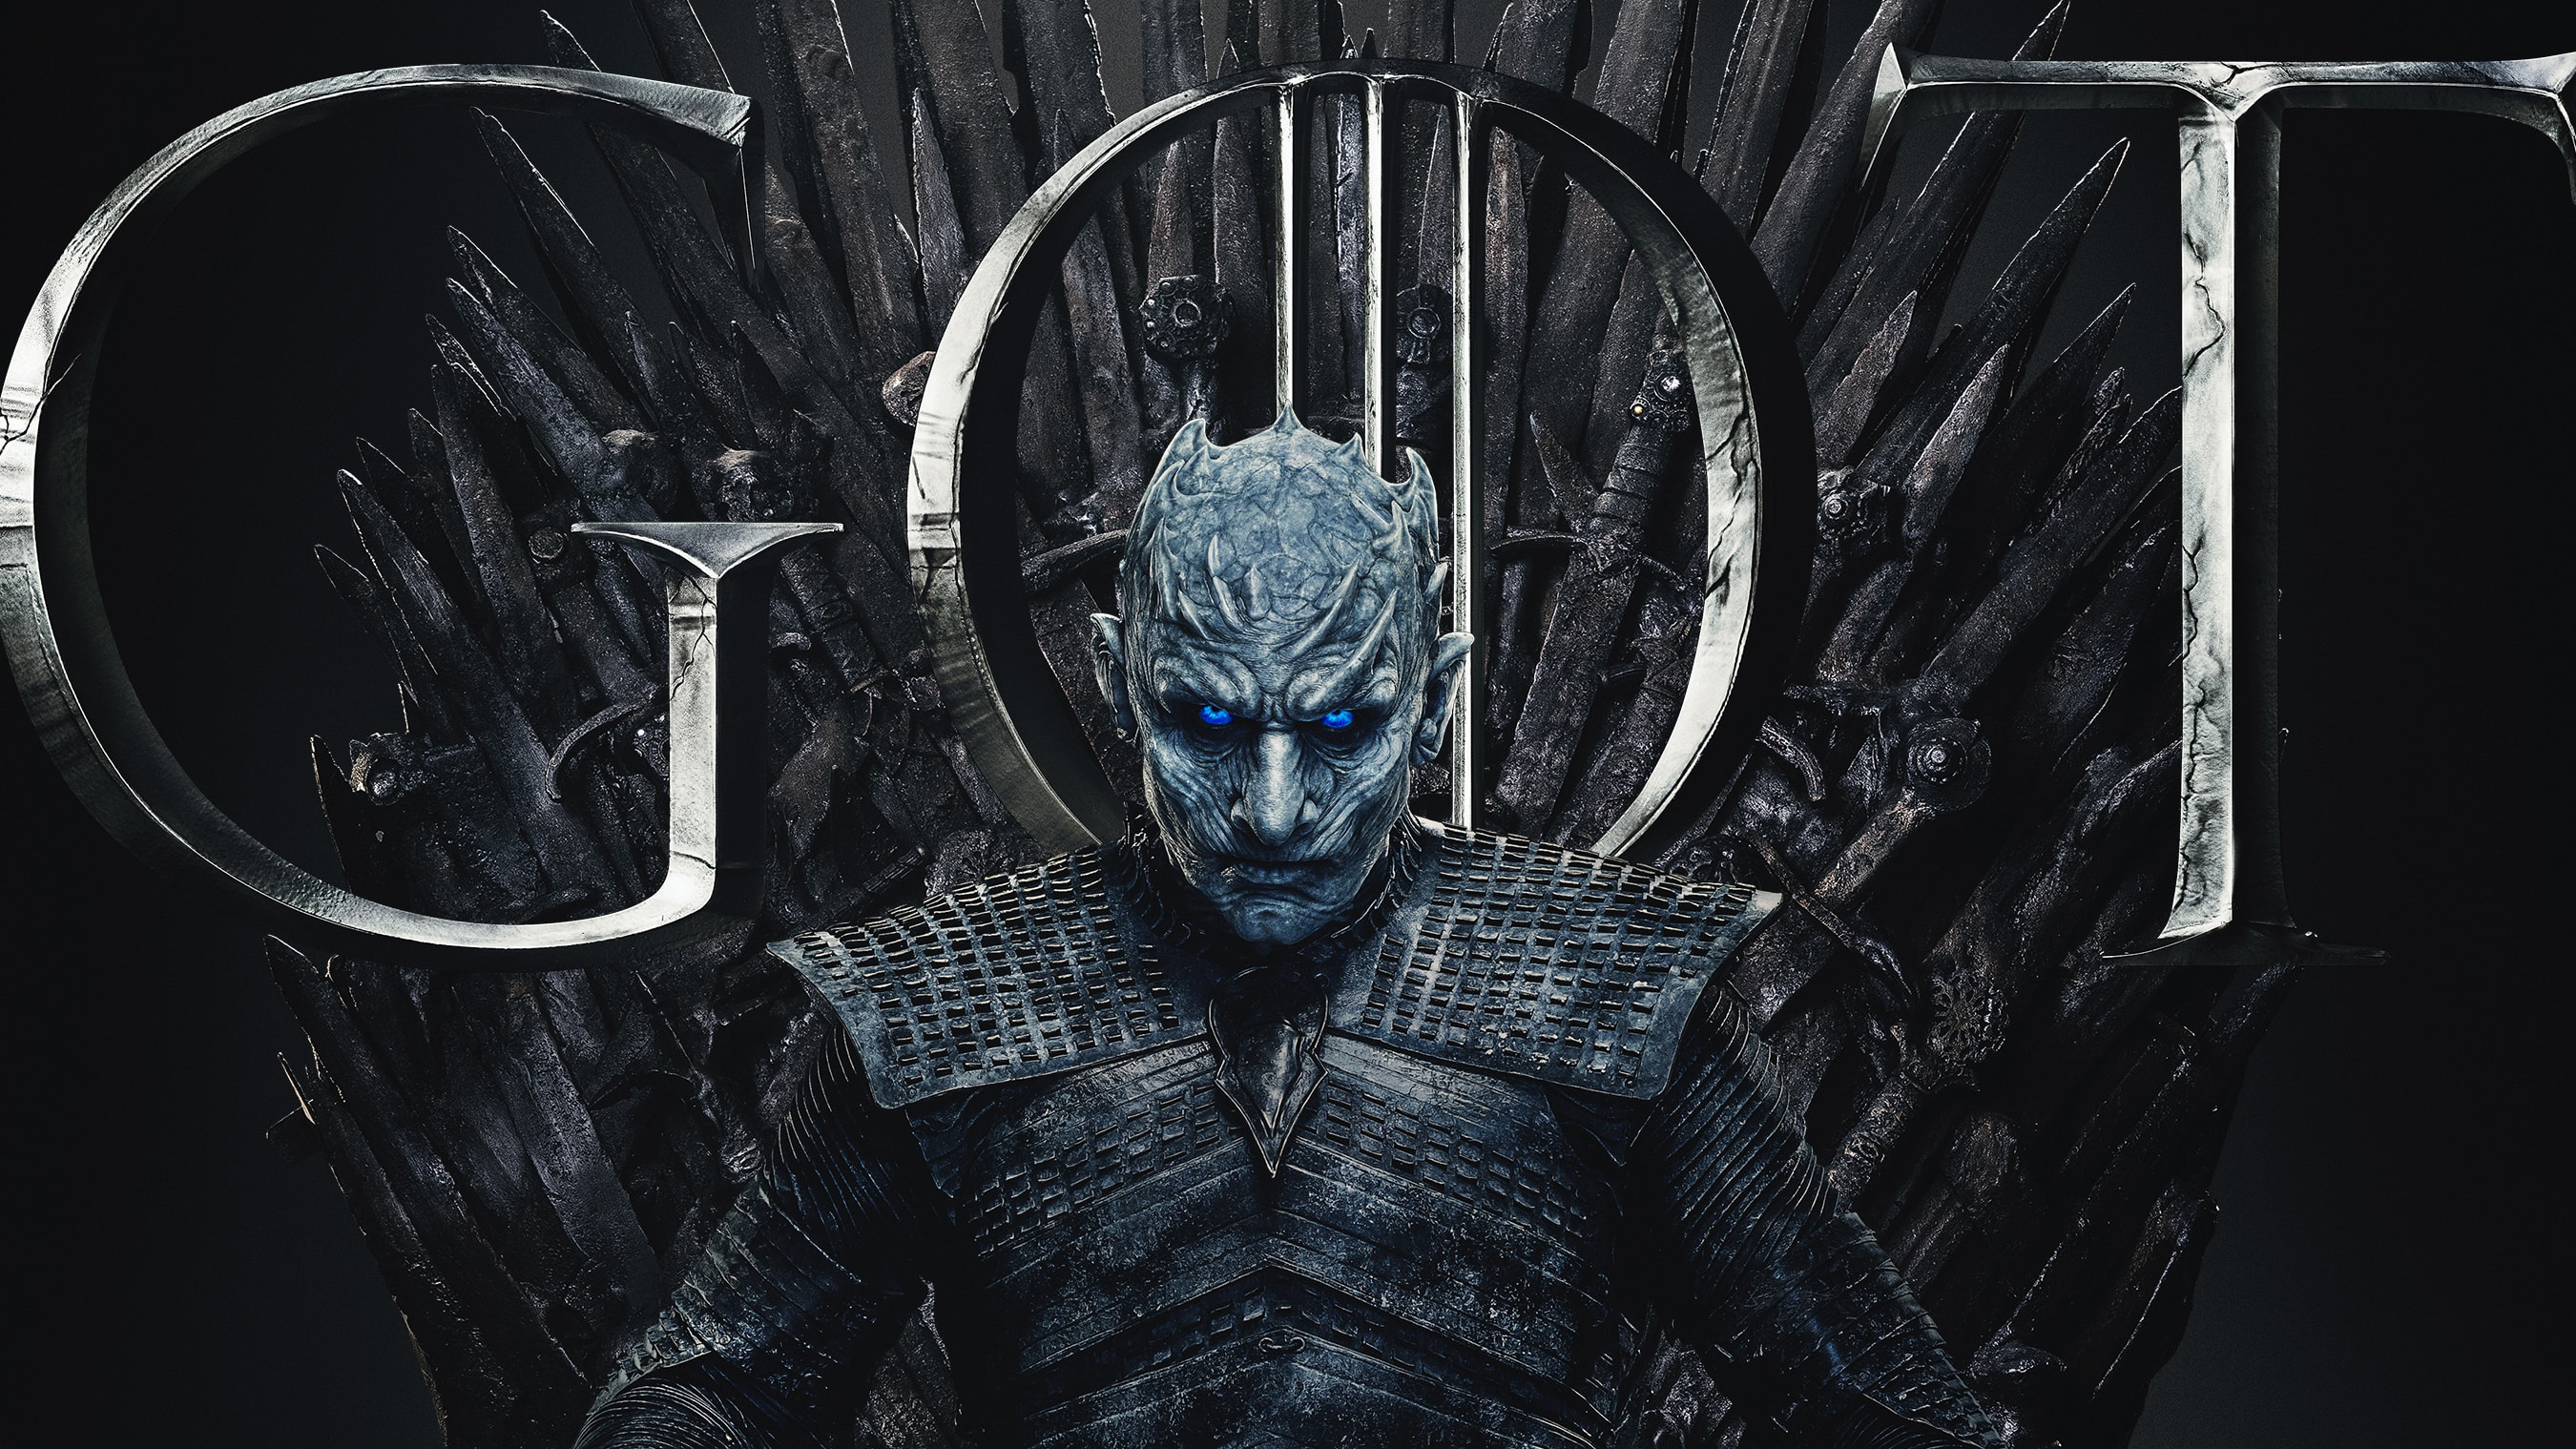 Game of Thrones night king white walker 24 X 14 inch Silk Poster